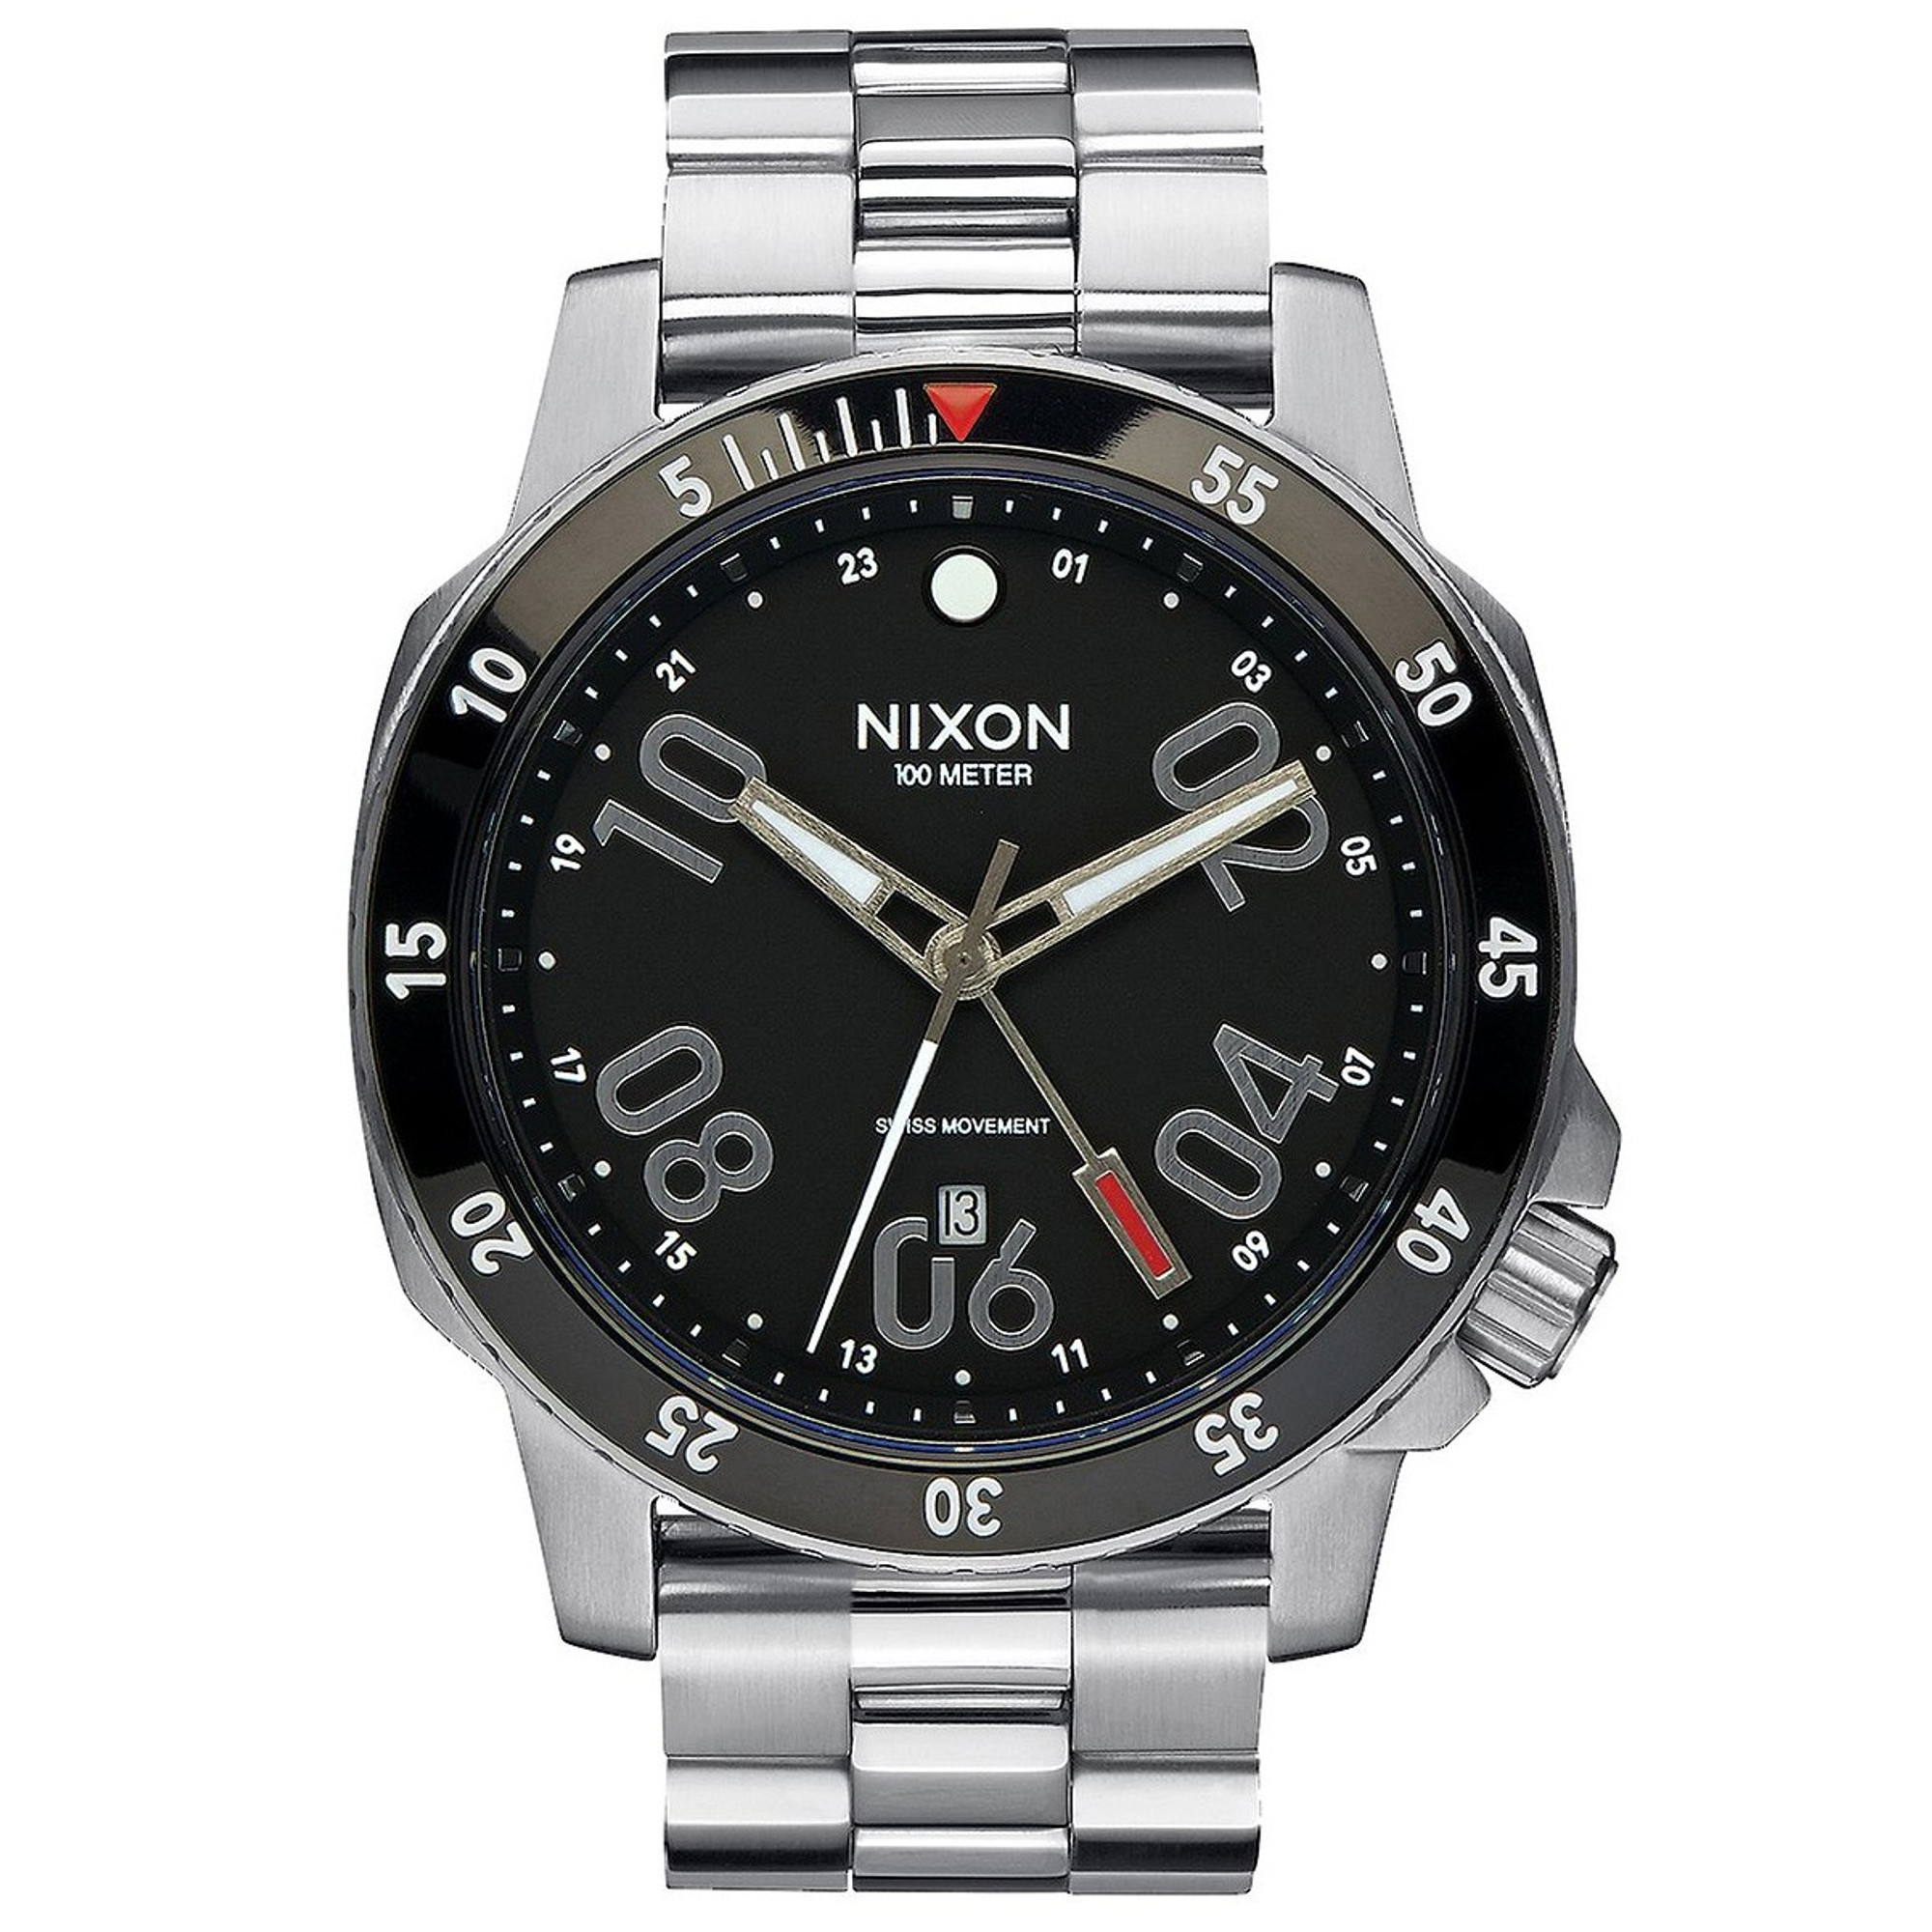 NIXON Ranger GMT Quarz Herrenuhr A941-000